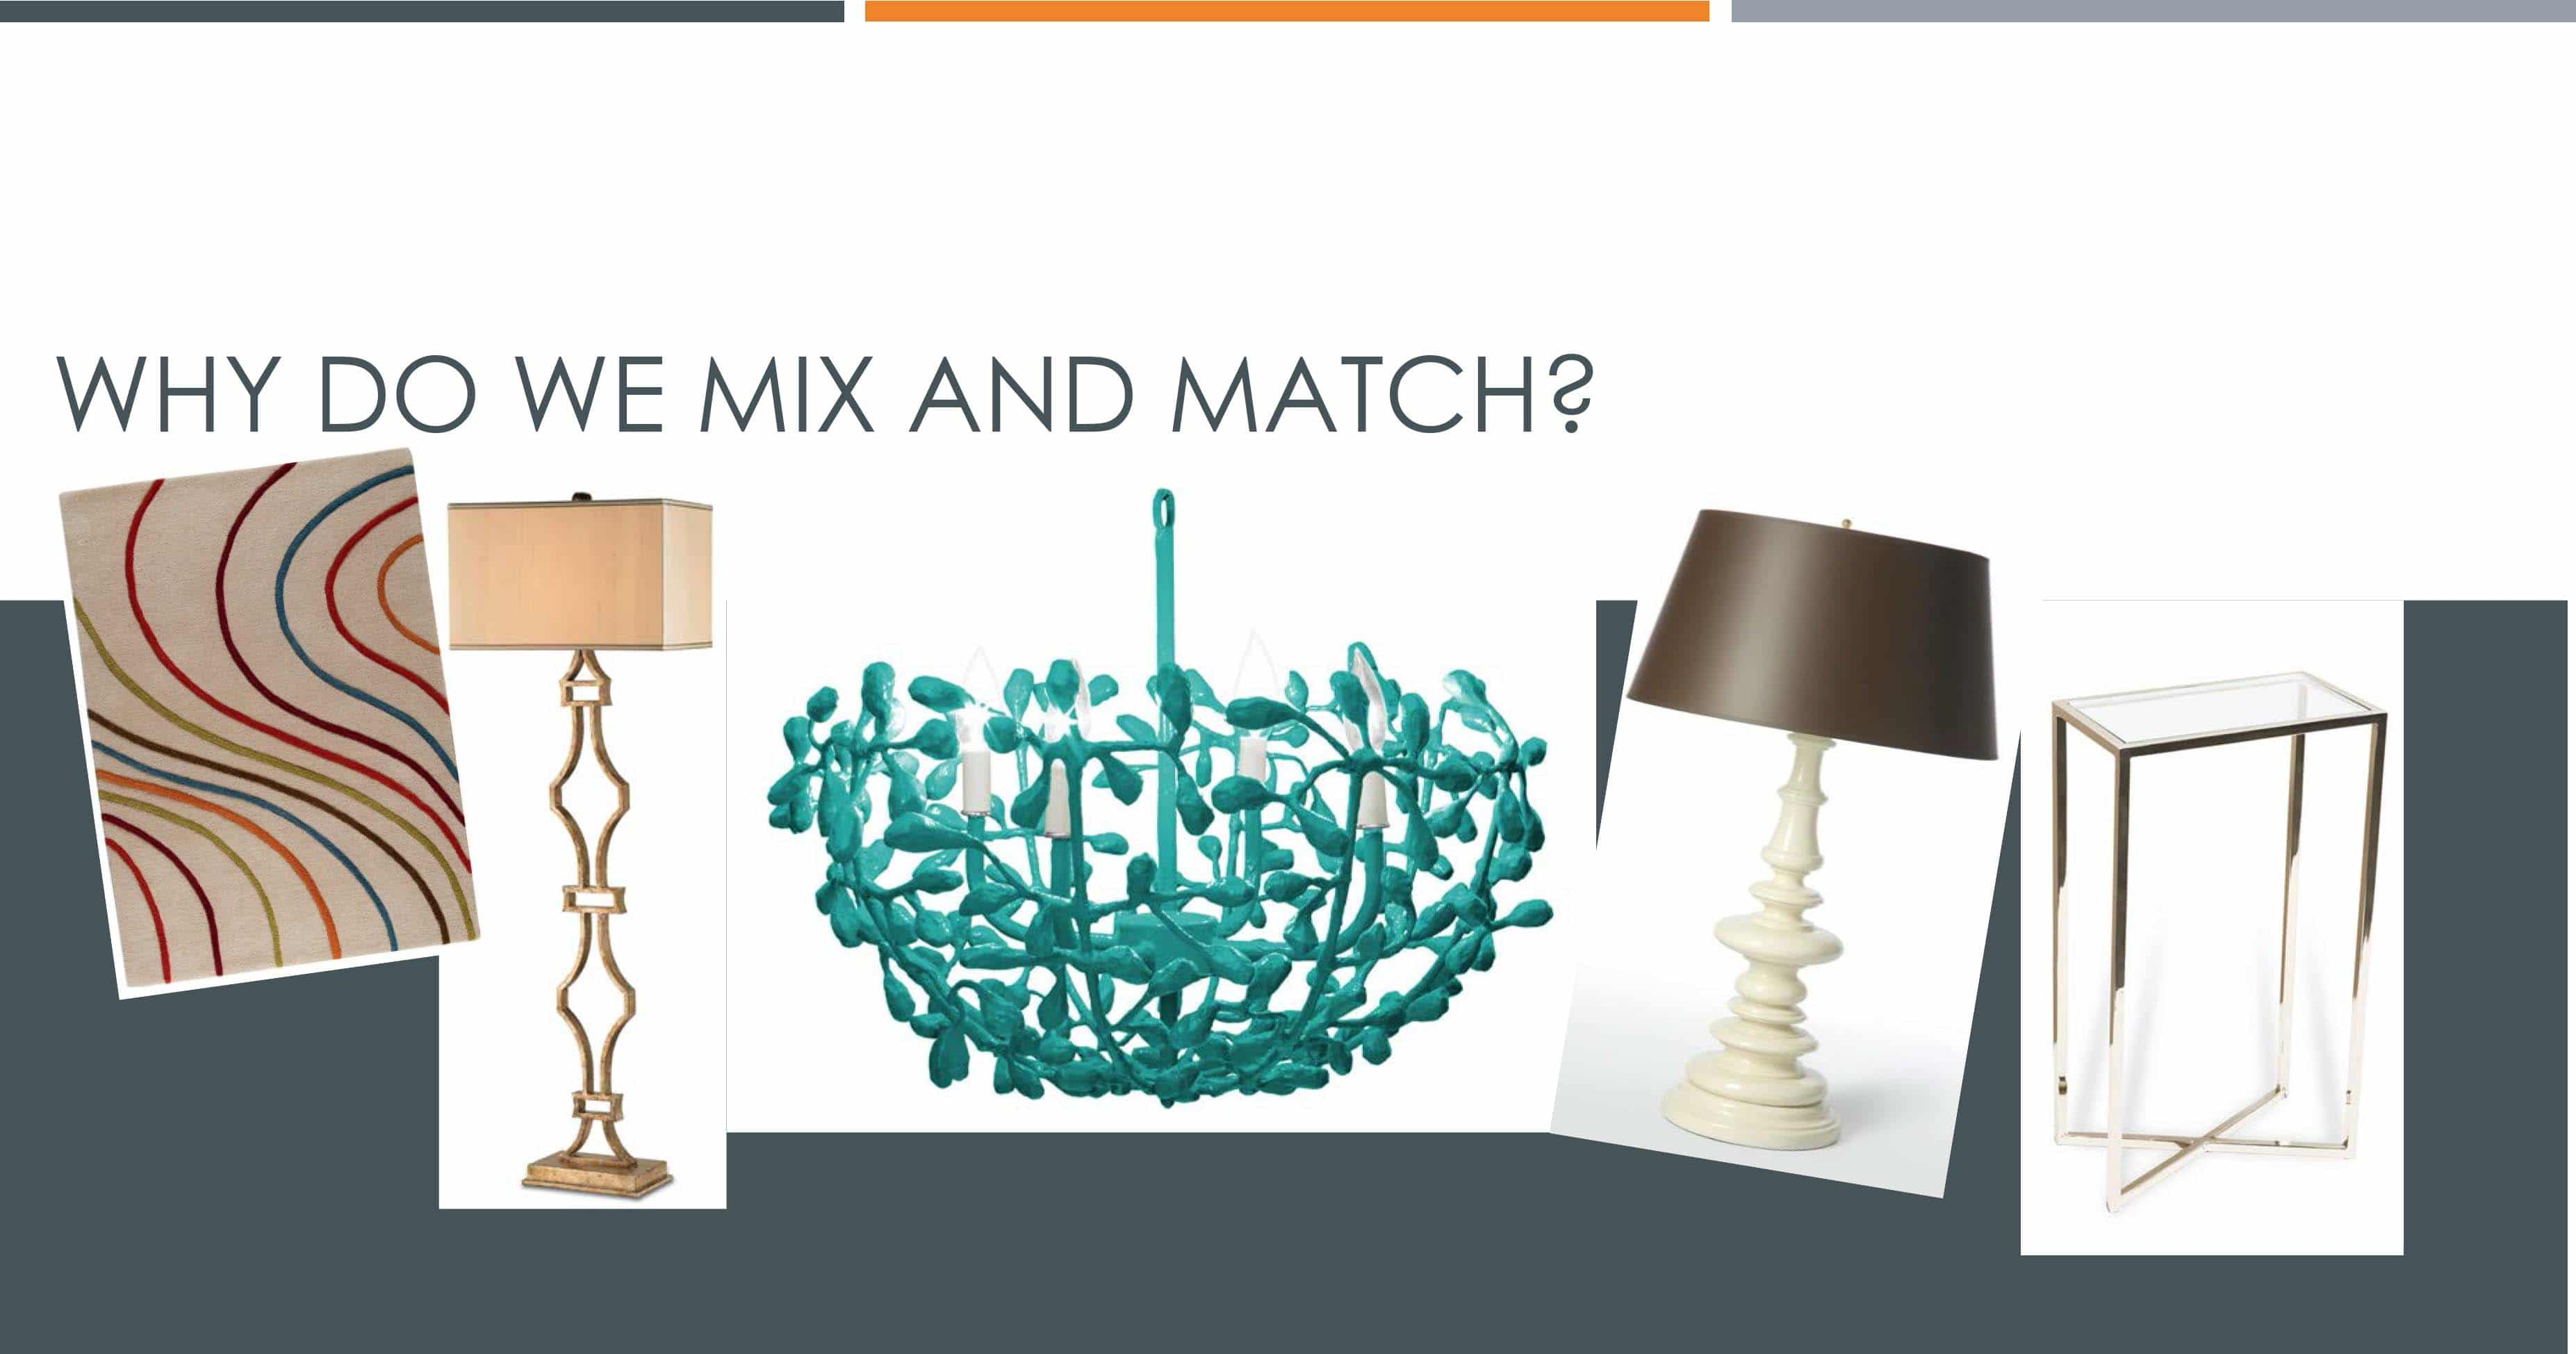 Why do we mix and match?